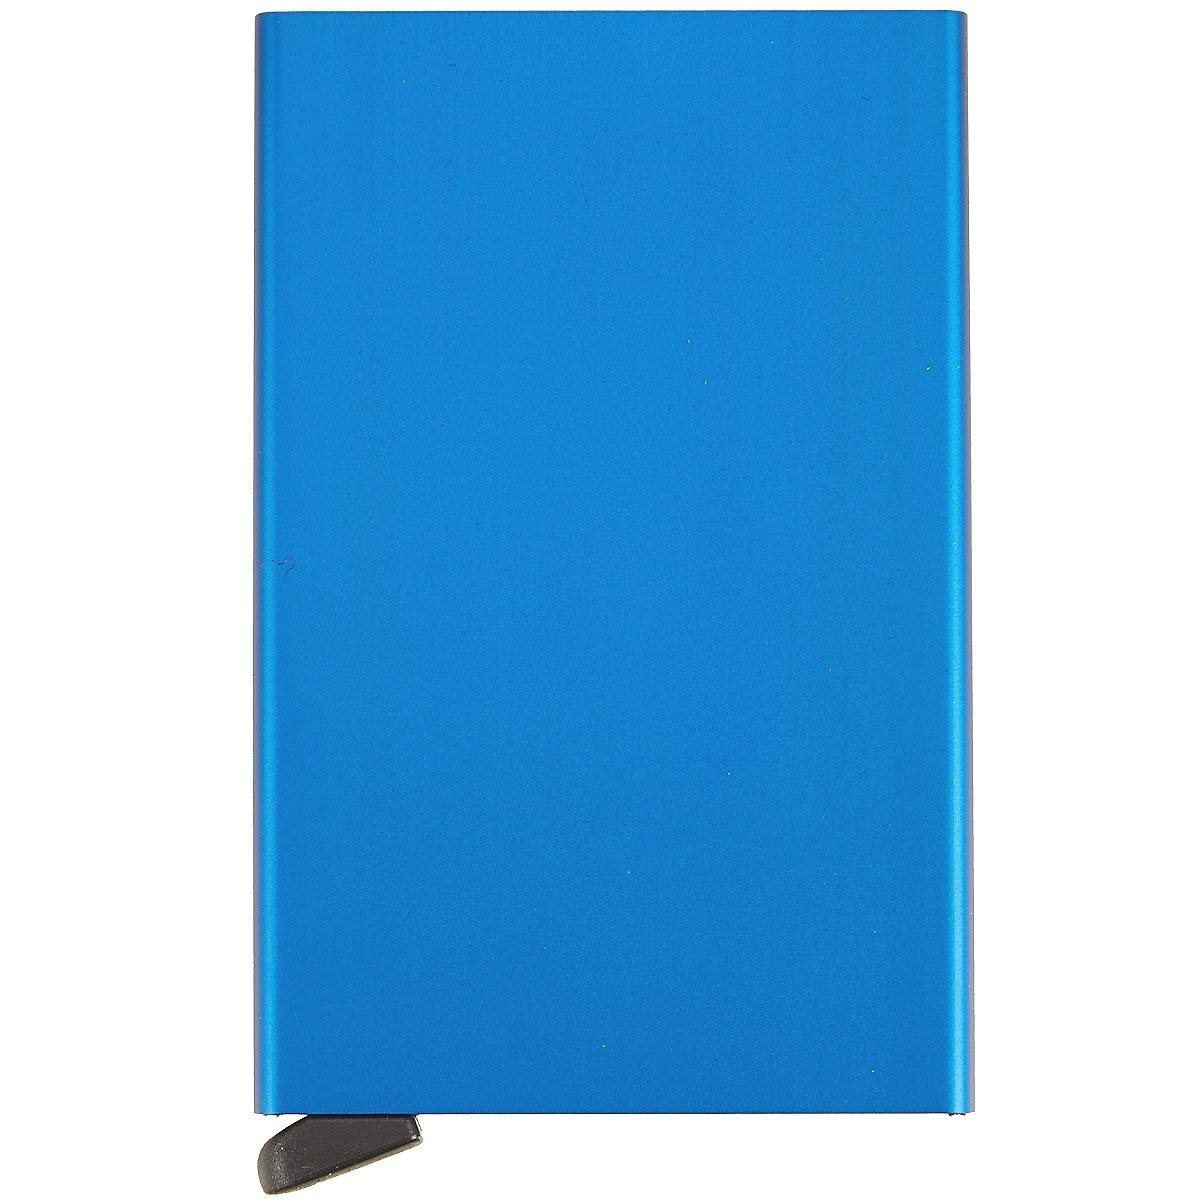 dfb9218329f Amazon.com: Secrid Card Protector with RFID Proection, Blue, Very Slim  Credit Card Holder: XMAS SOLUTIONS